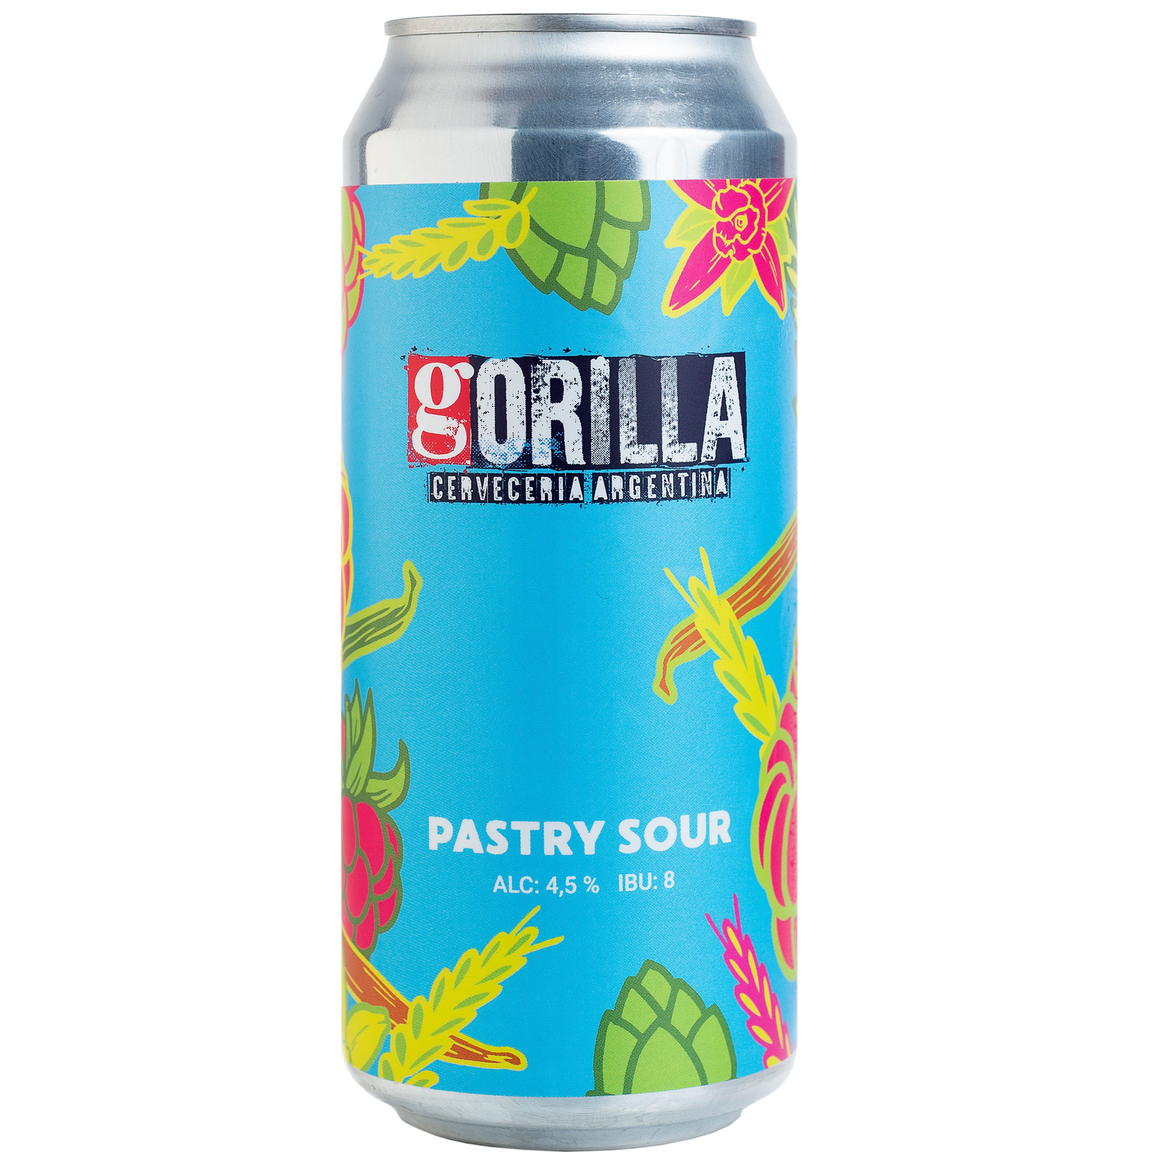 Gorilla Pastry Sour Strawberry Berliner Weisse - Lata 473 cc.